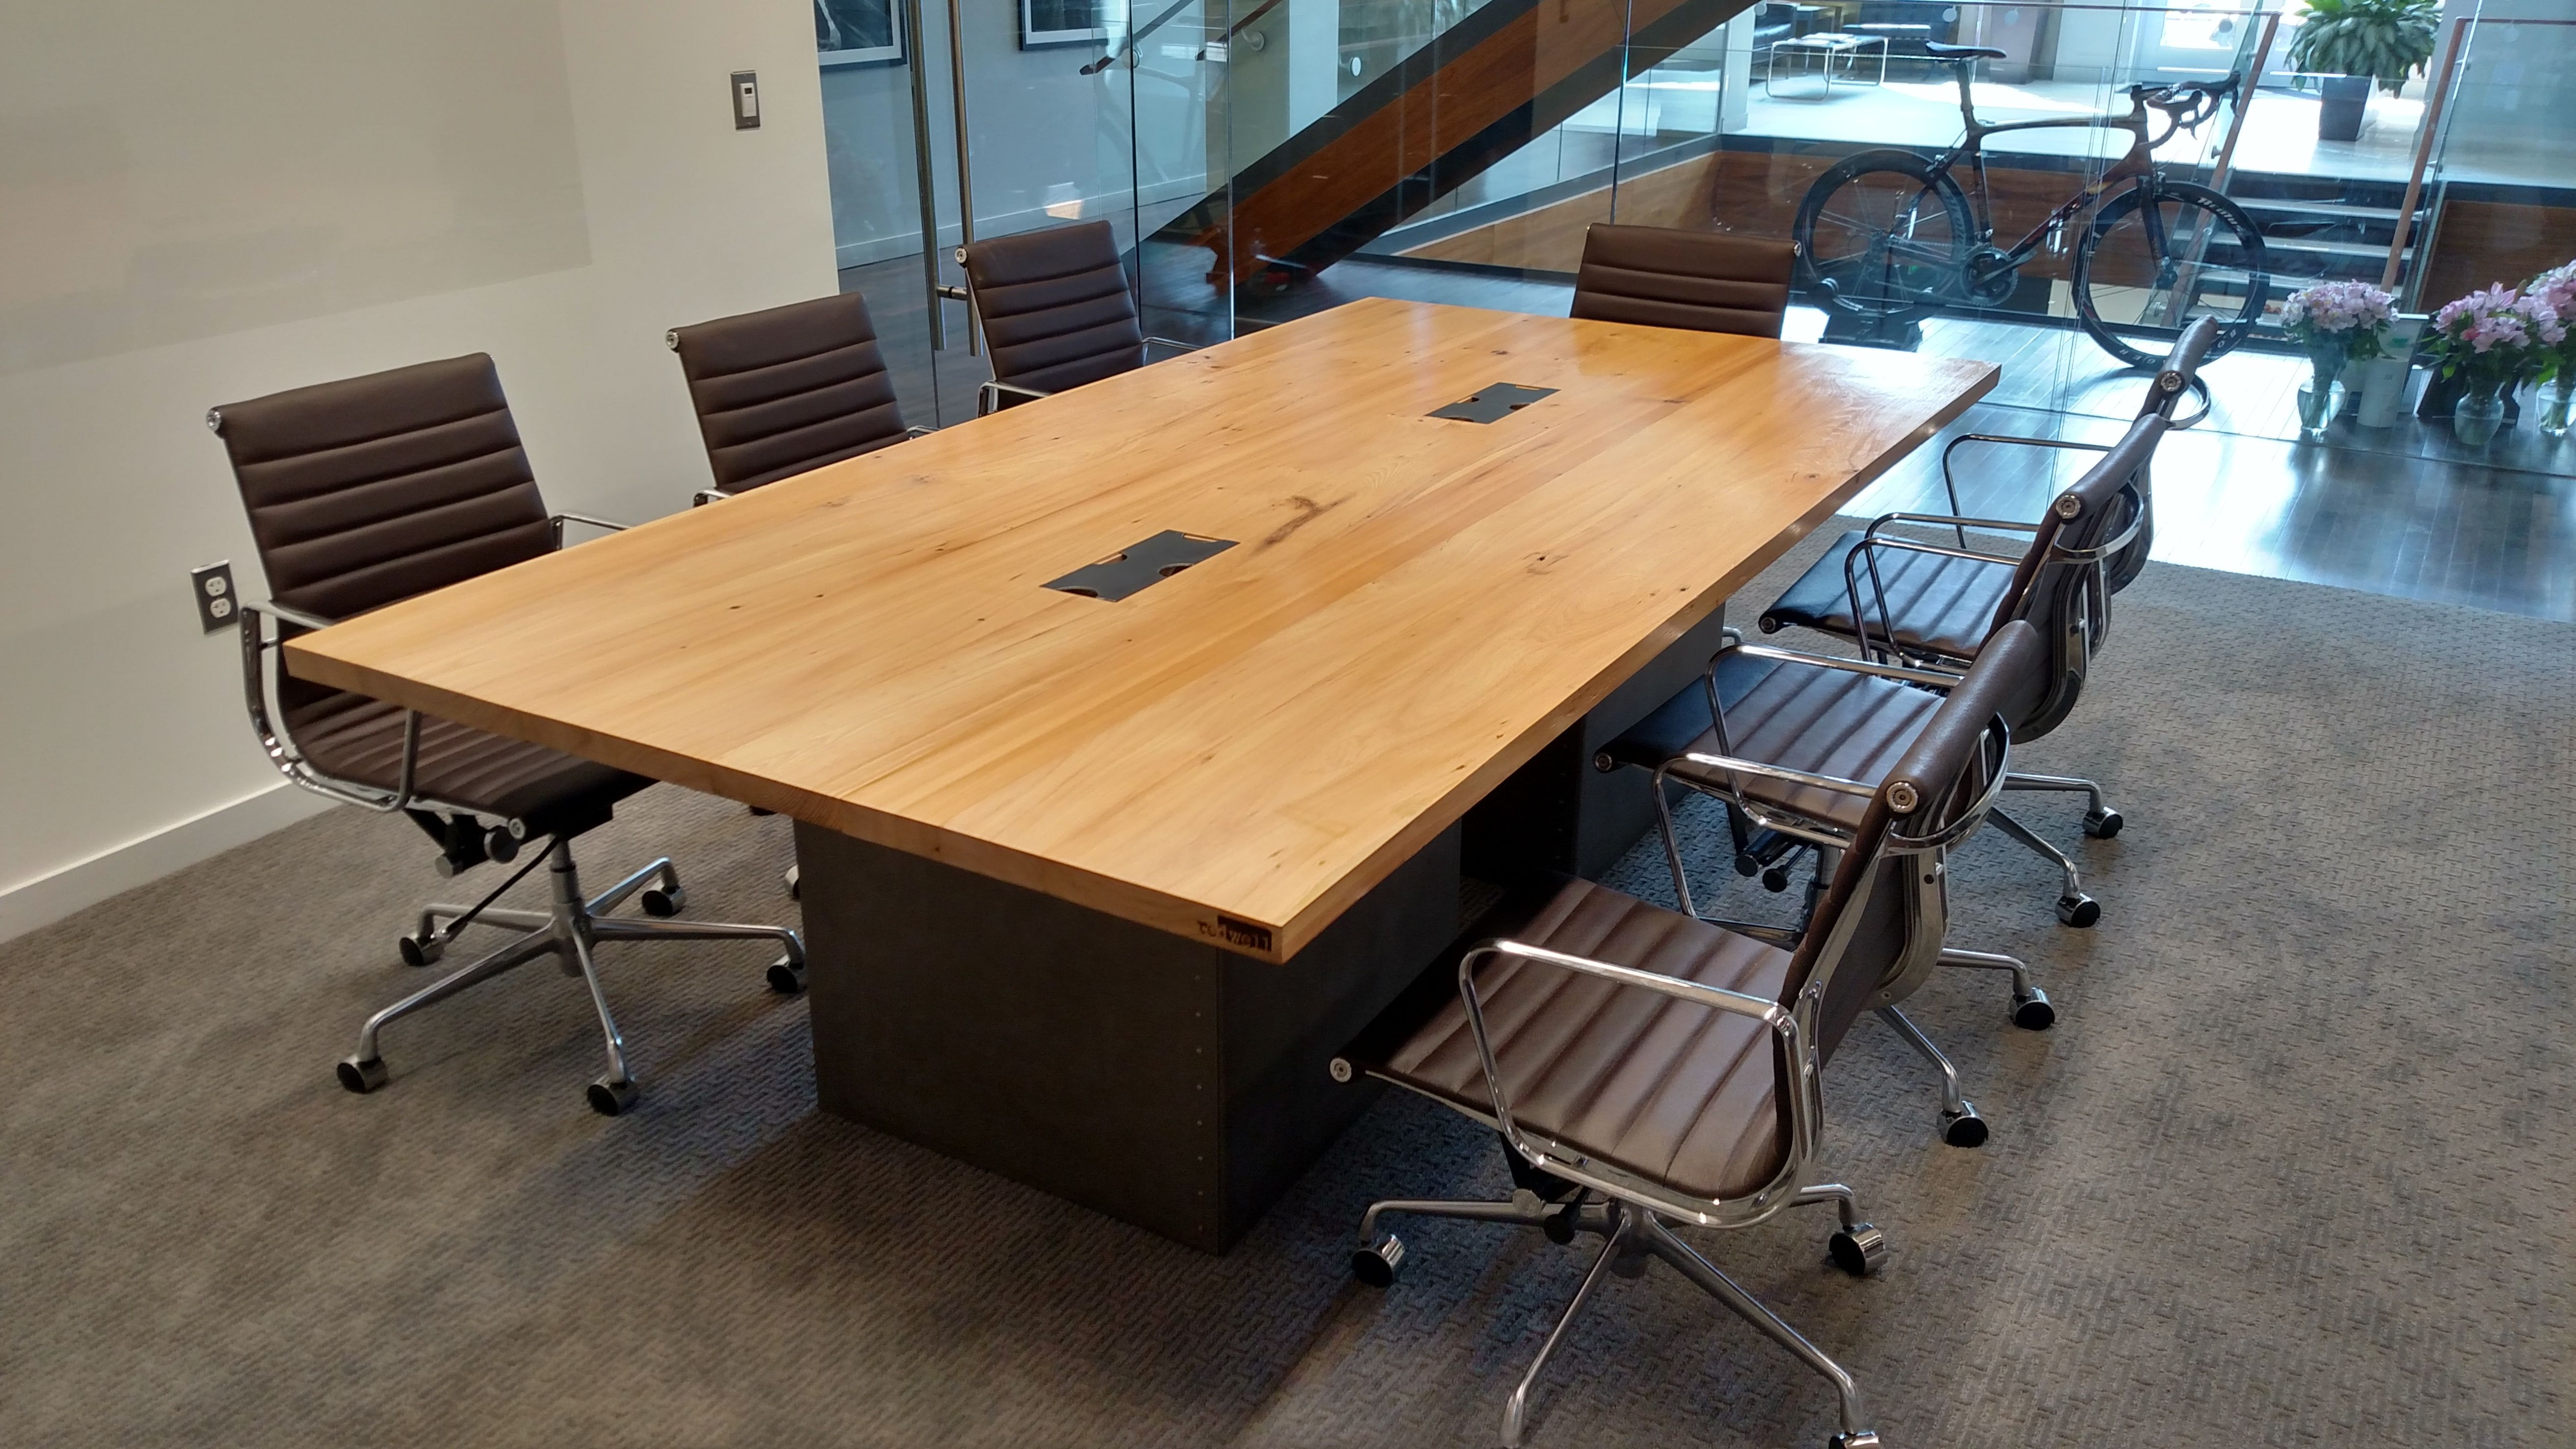 Hand Made Reclaimed Wood And Steel Industrial Conference Table By Re - Large wooden conference table